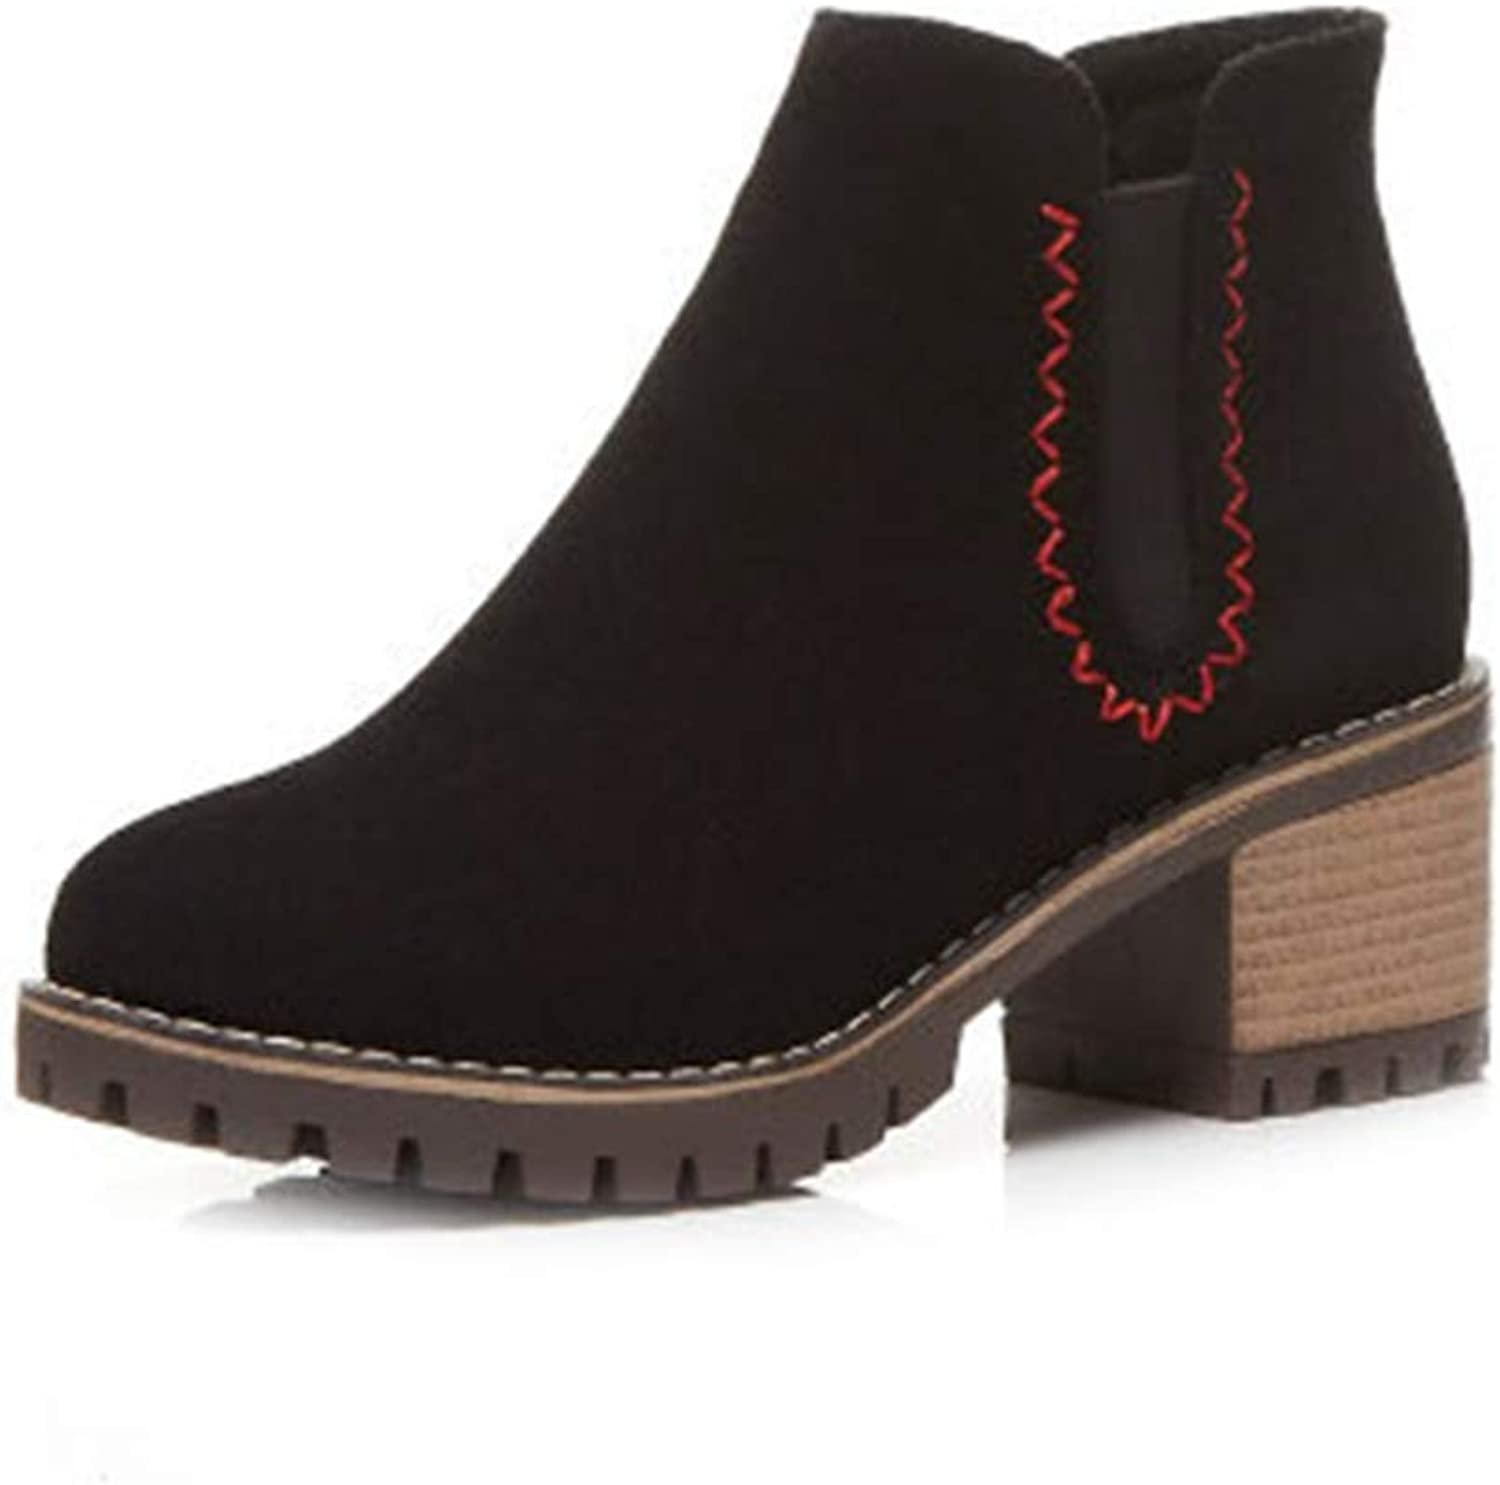 GIY Women's Chunky Block Stacked Heel Ankle Boots Suede Round Toe Platform Bootie Cotton Martin Short Boot